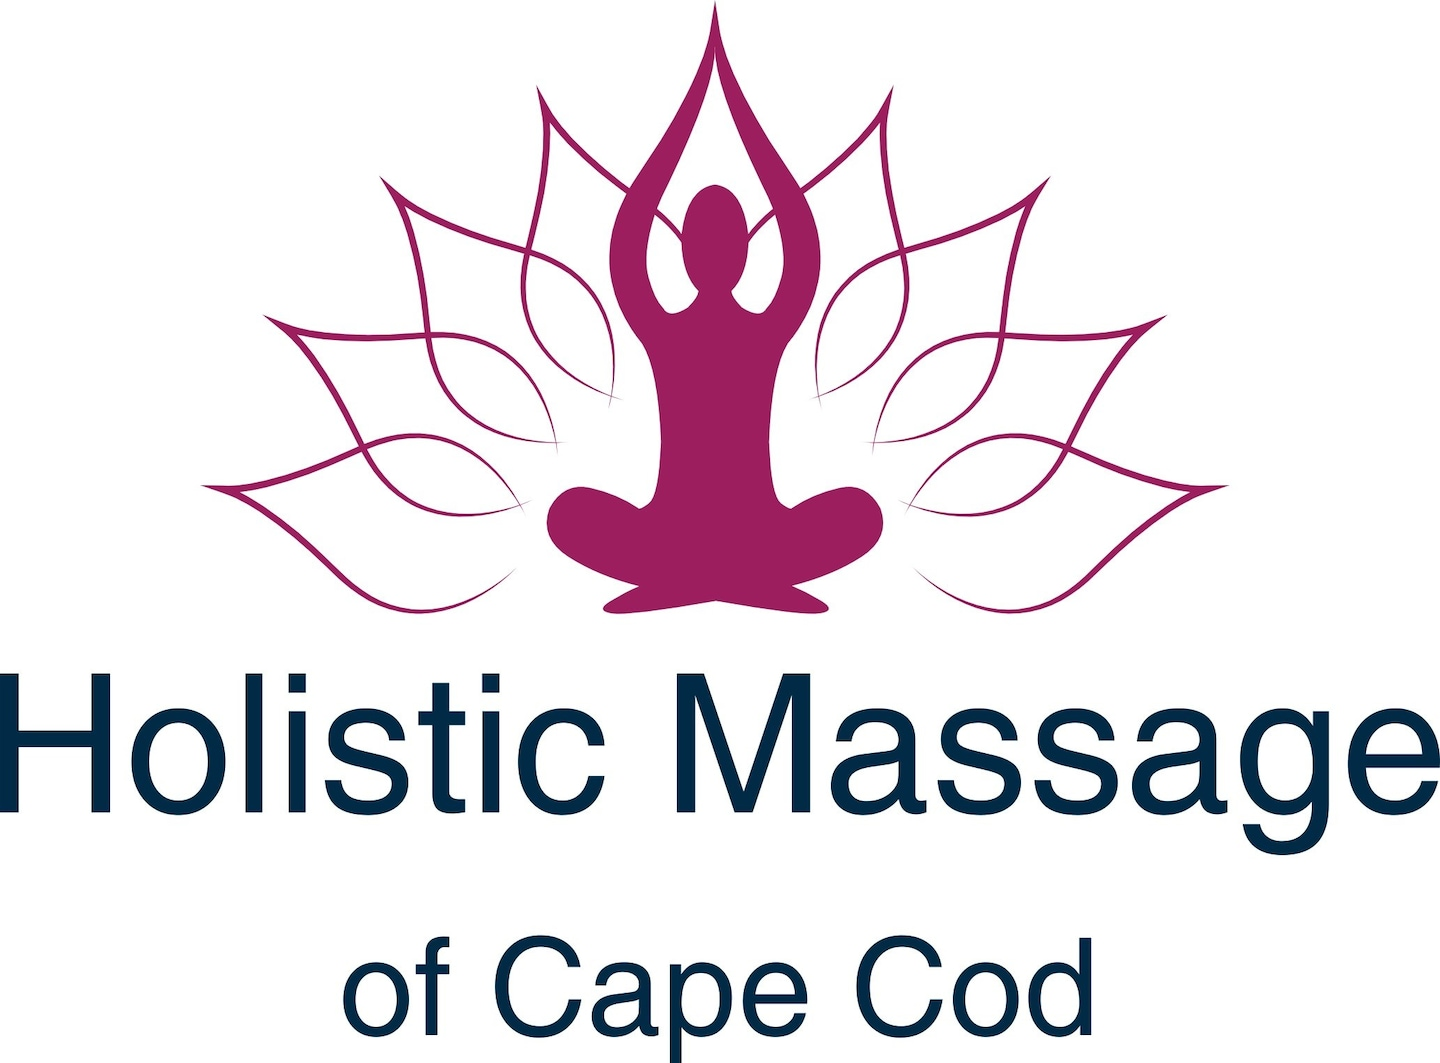 Holistic Massage of Cape Cod